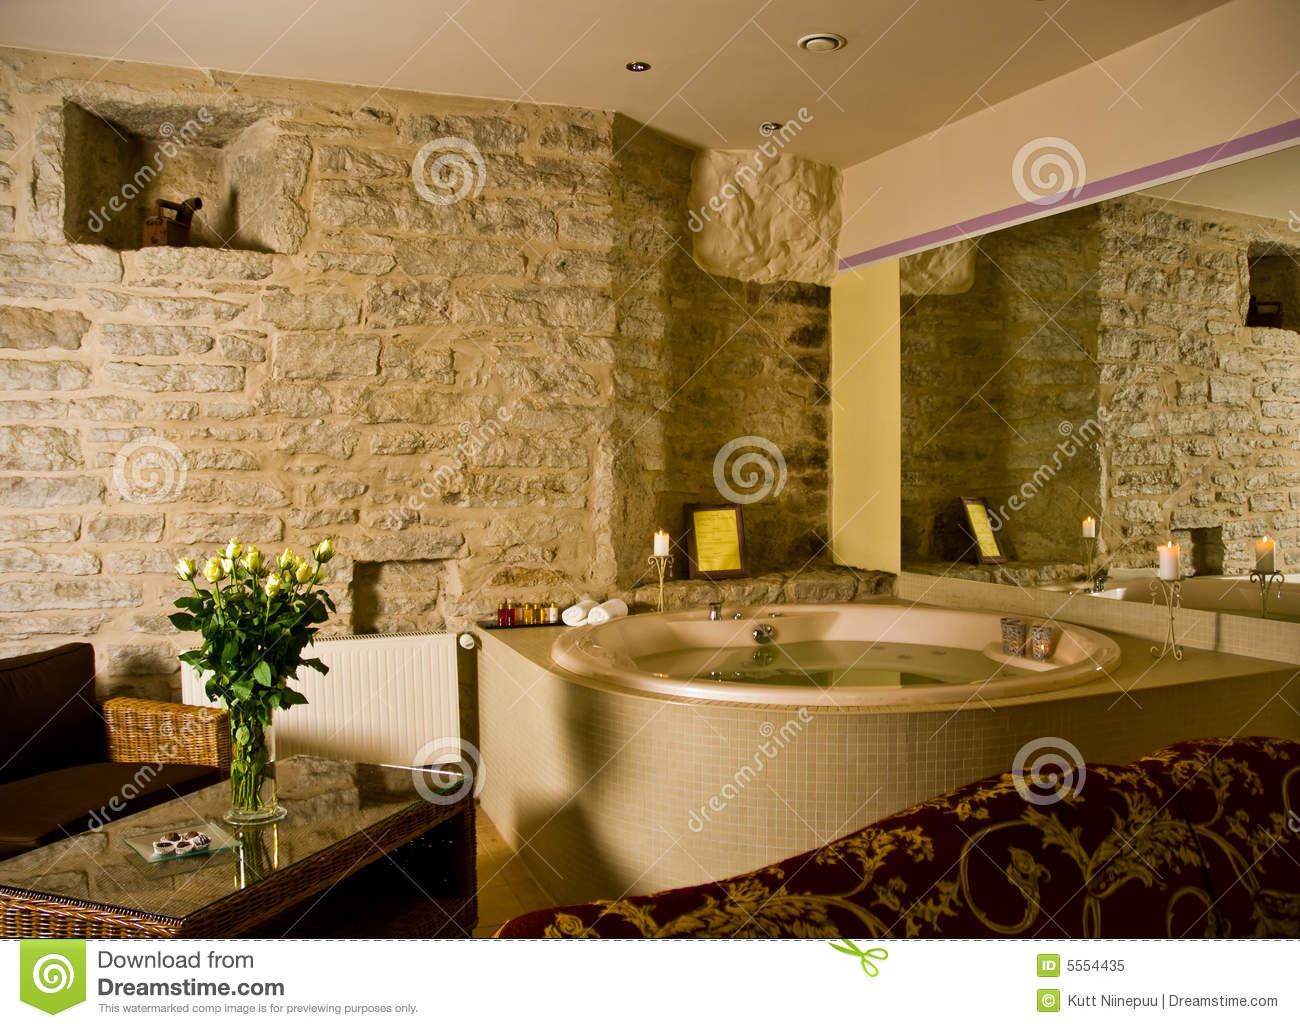 jacuzzi hot suites potawatomi room corner suite in guest rooms near casino tub with me hotels milwaukee hotel